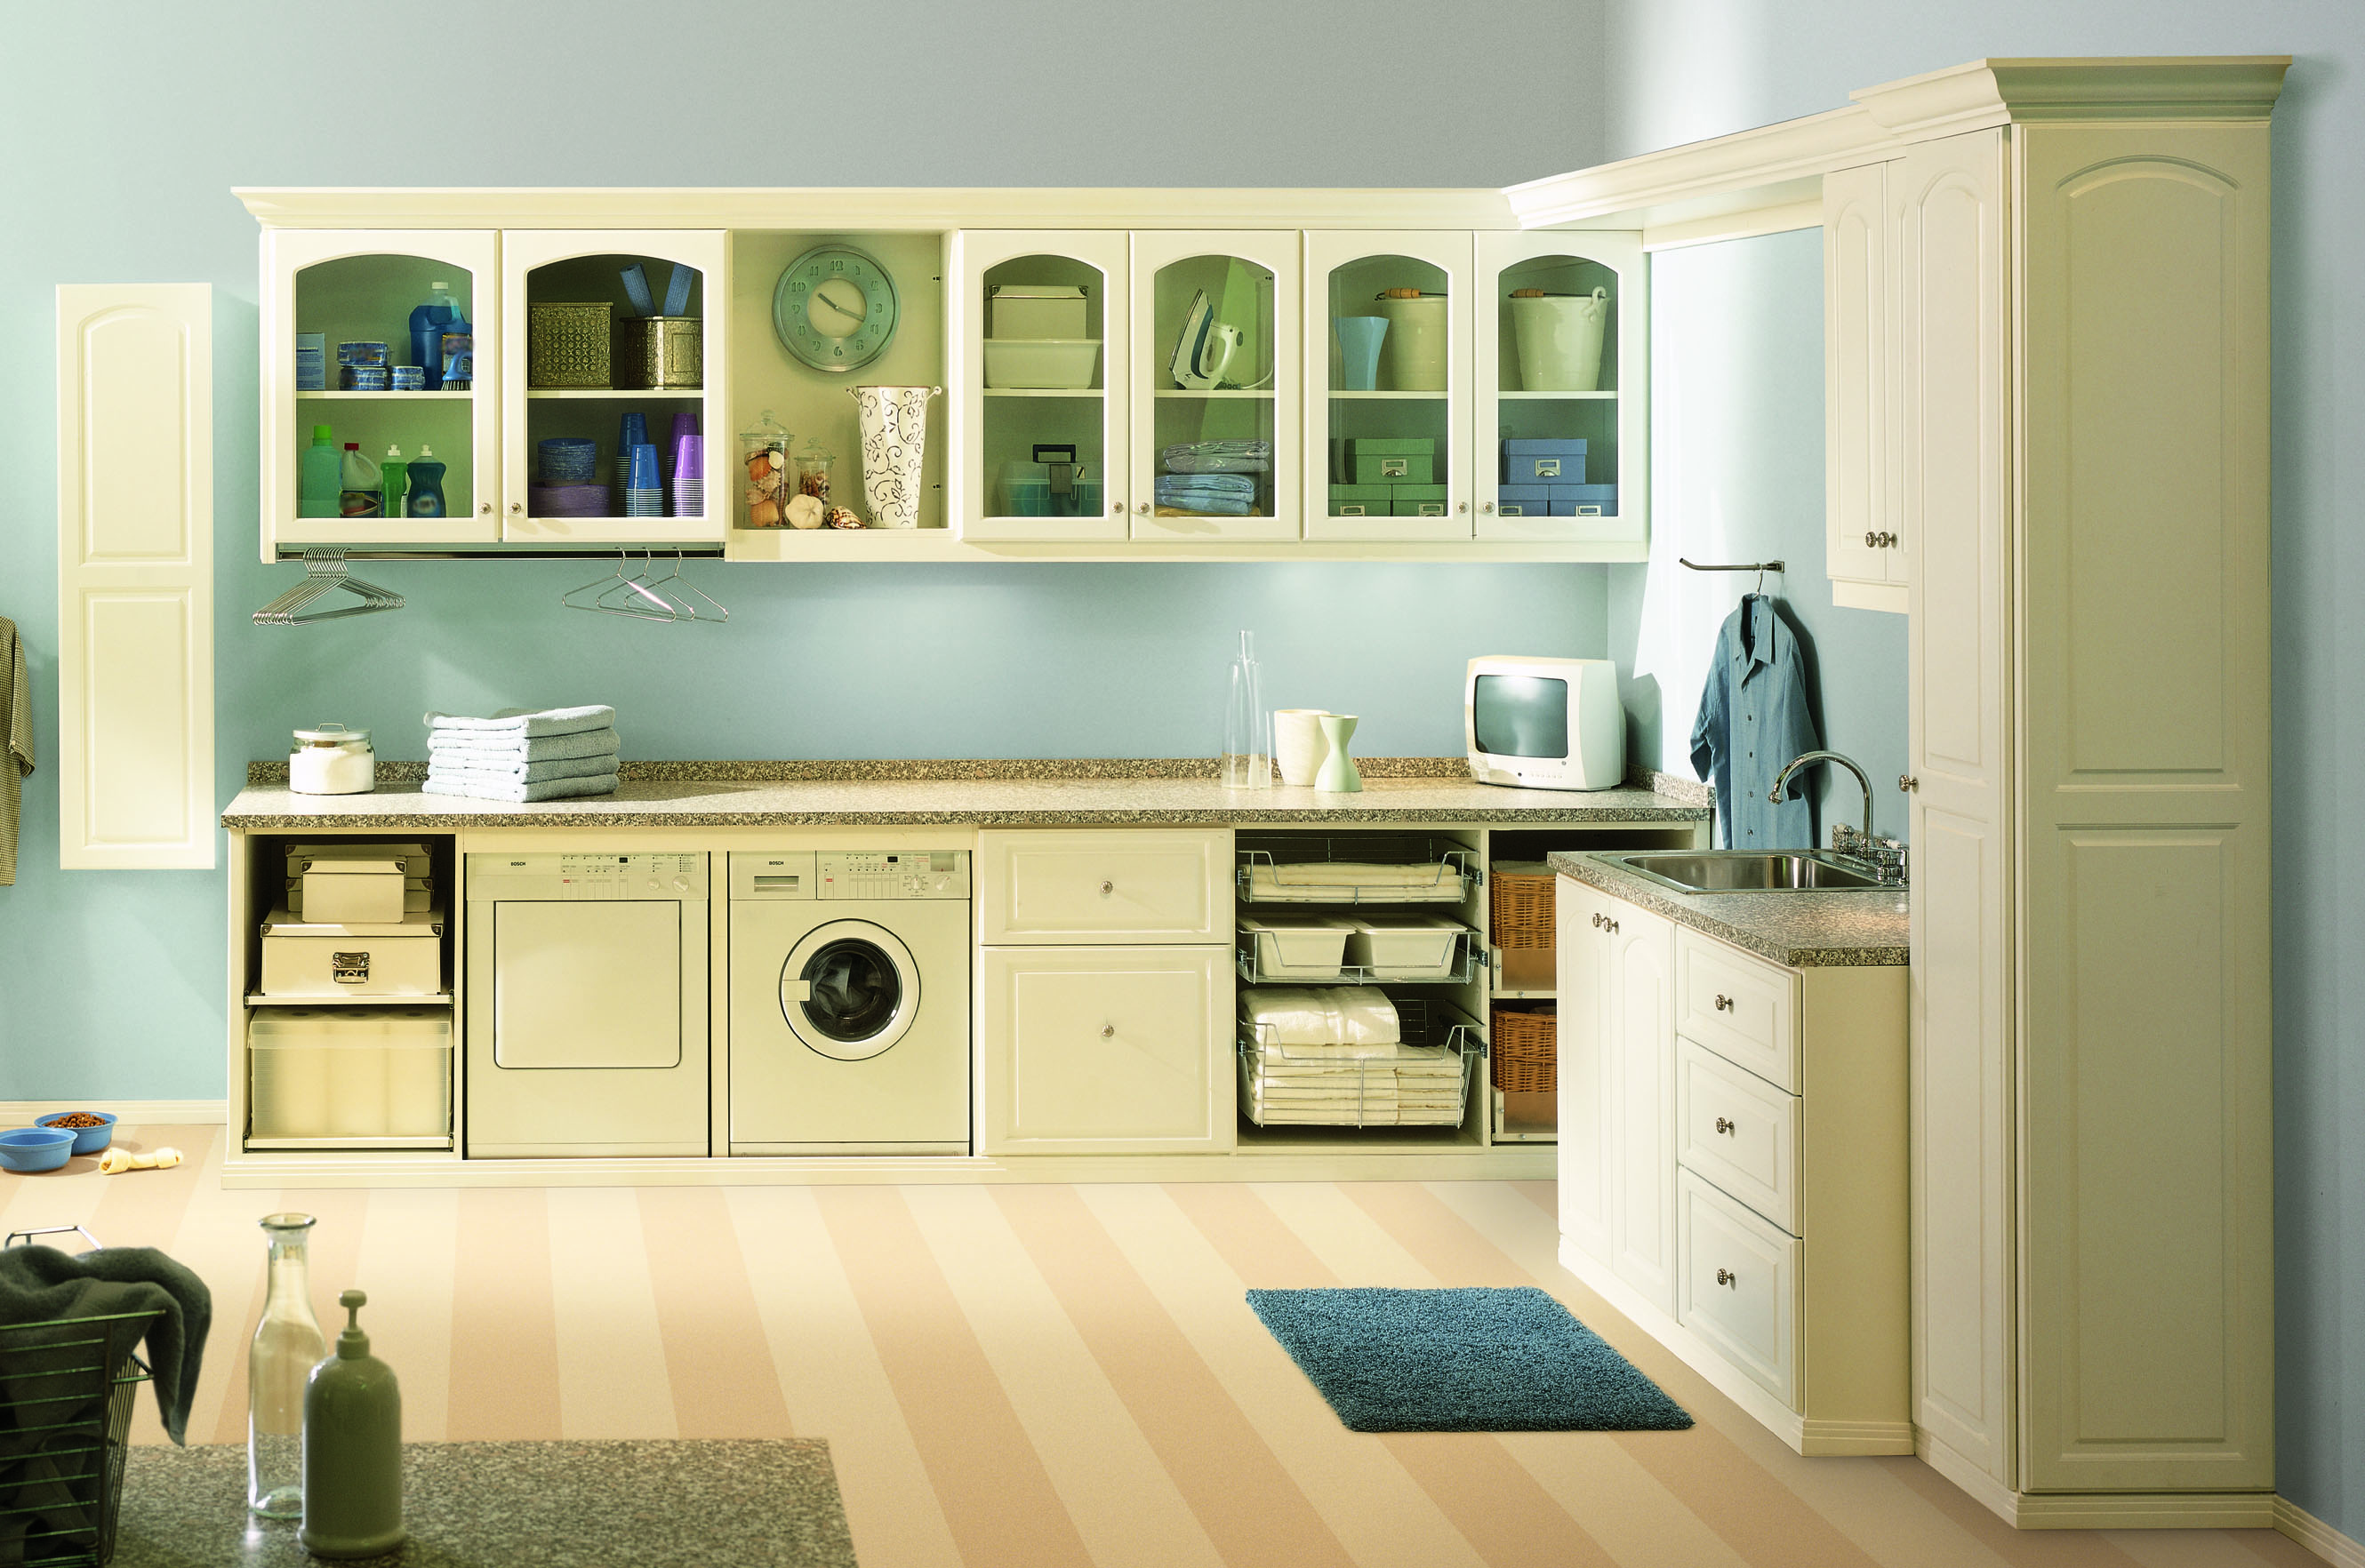 Laundry Room In Kitchen Secrets For Functional And Attractive Laundry Room Cabinets